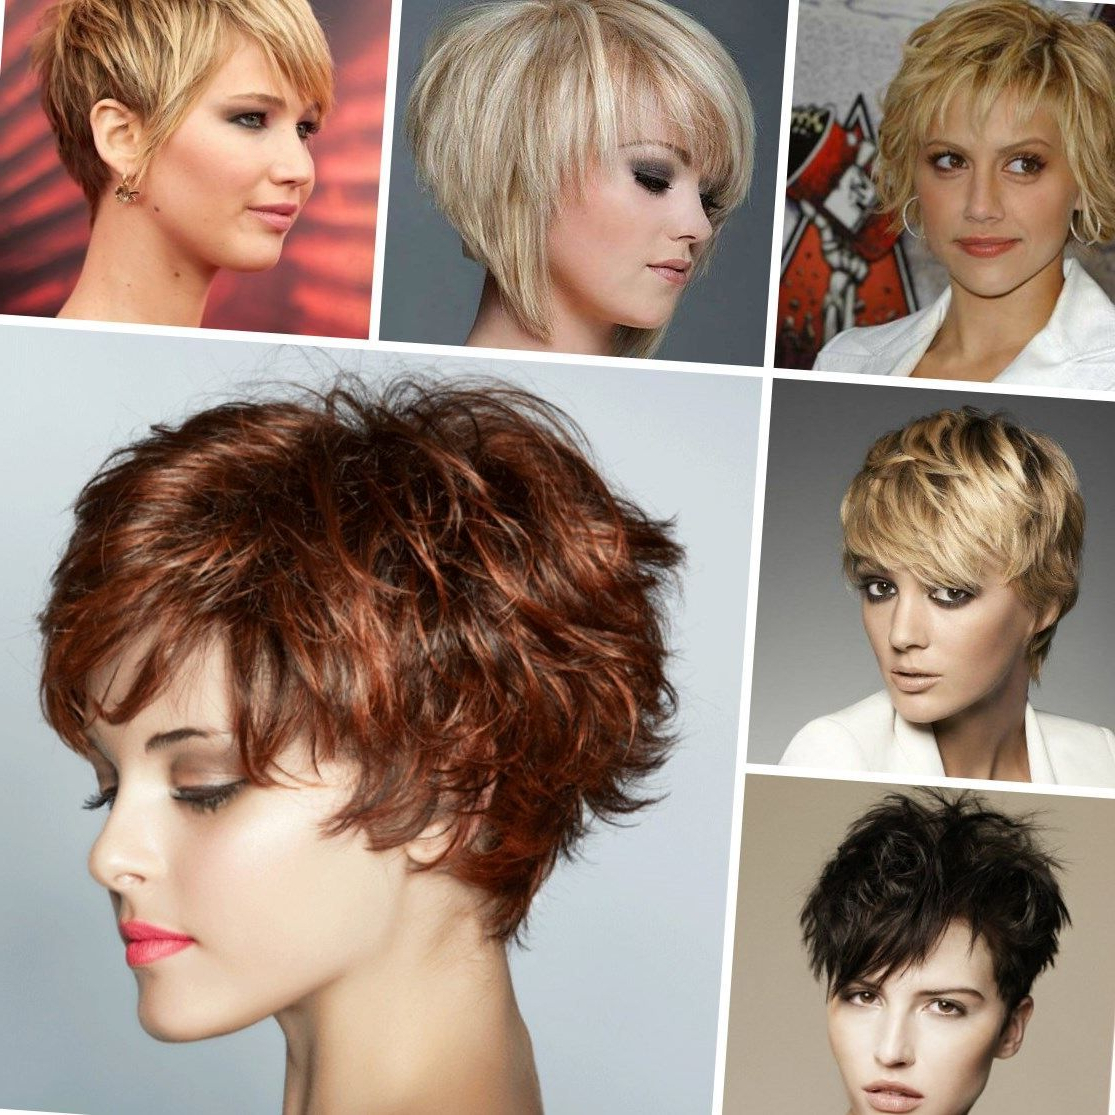 20 Short Sassy Haircuts Short Hairstyles 2017 2018 Most Throughout Bold Pixie Haircuts (View 5 of 20)